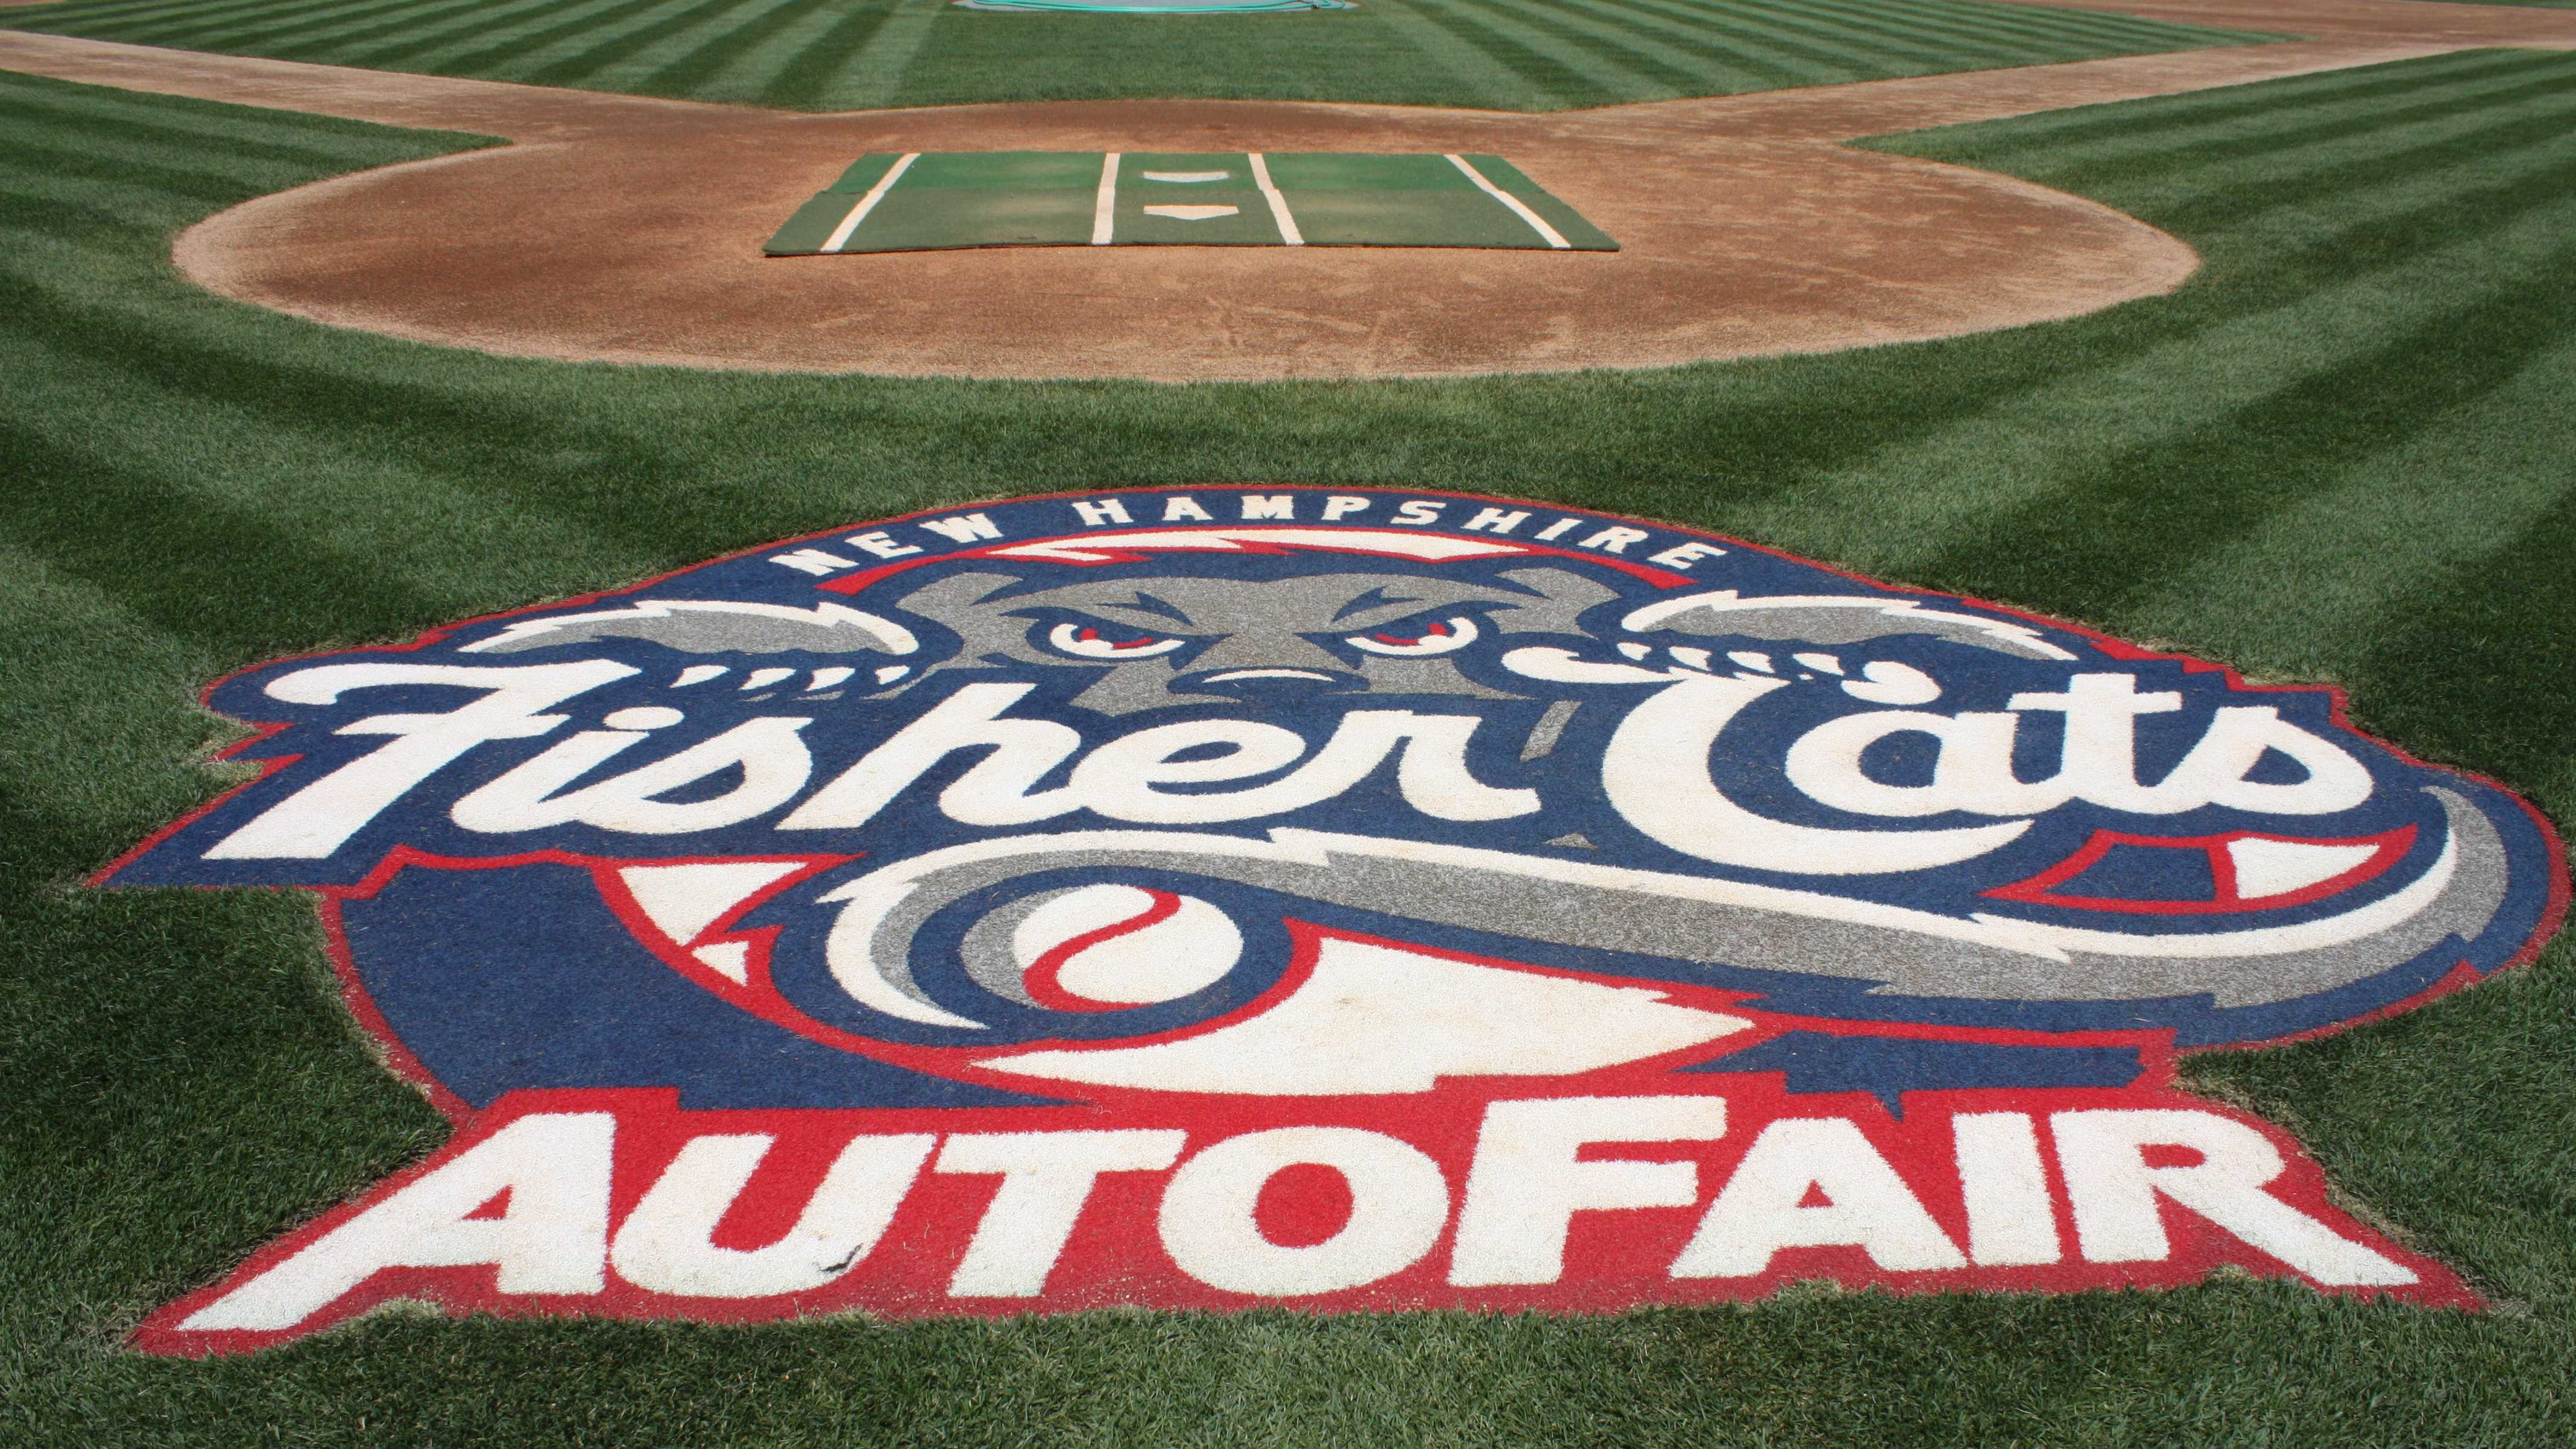 The New Hampshire Fisher Cats played their inaugural season in 2004.